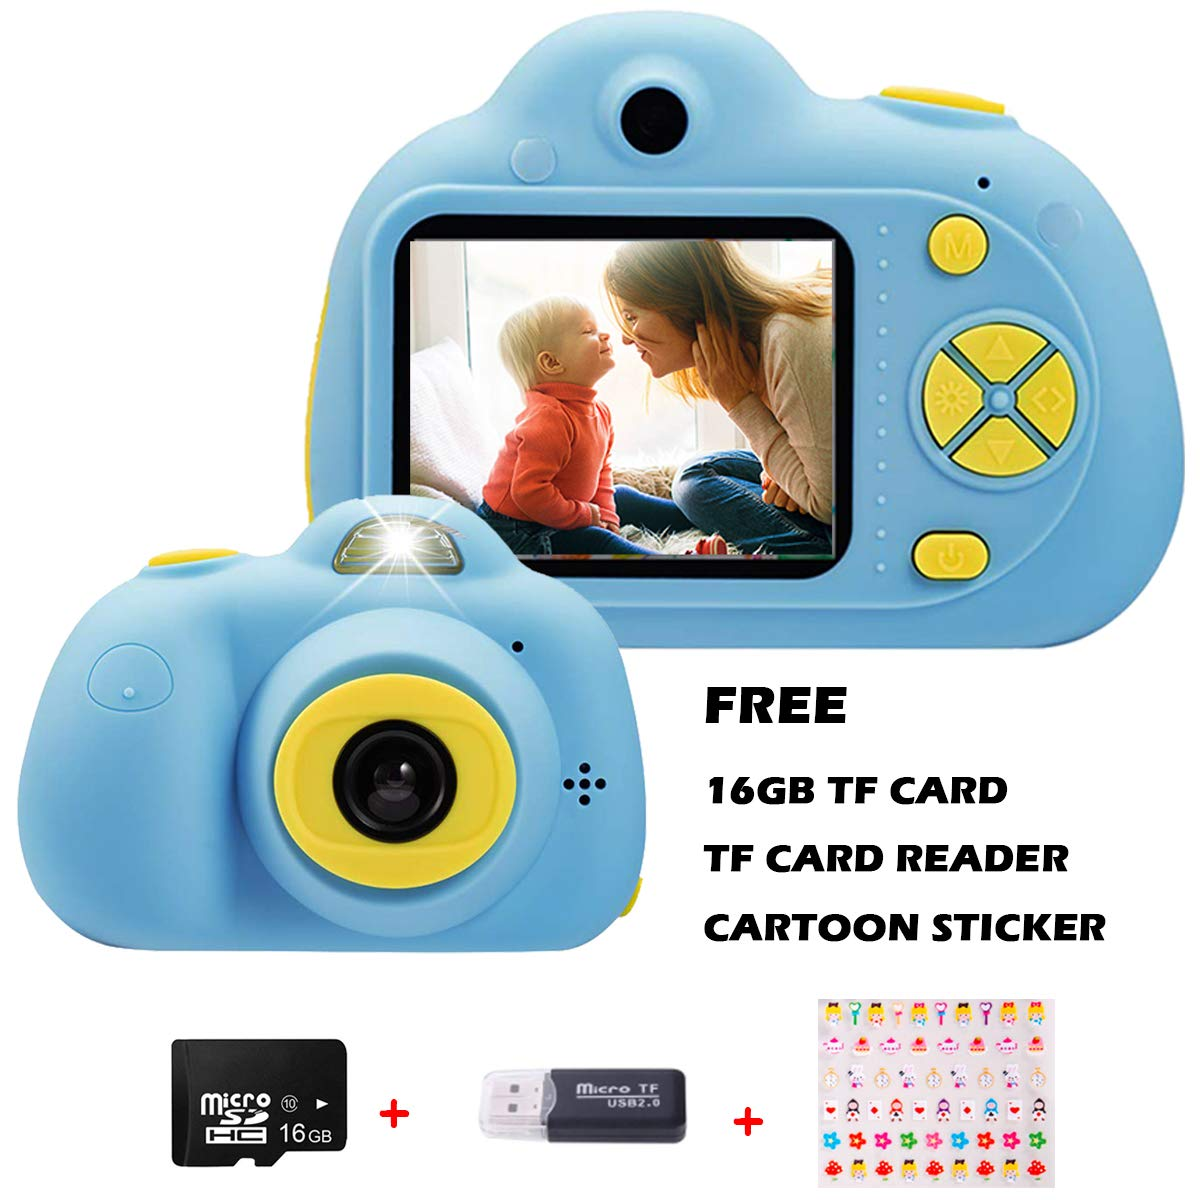 KIDOVE Kids Toys Fun Camera, Waterproof & Shockproof Child Selfie digital game Camcorder, 8MP 1080P dual camera Video Recorder, Creative Birthday Gifts for girls and boys, 16GB TF Card Included (Blue)